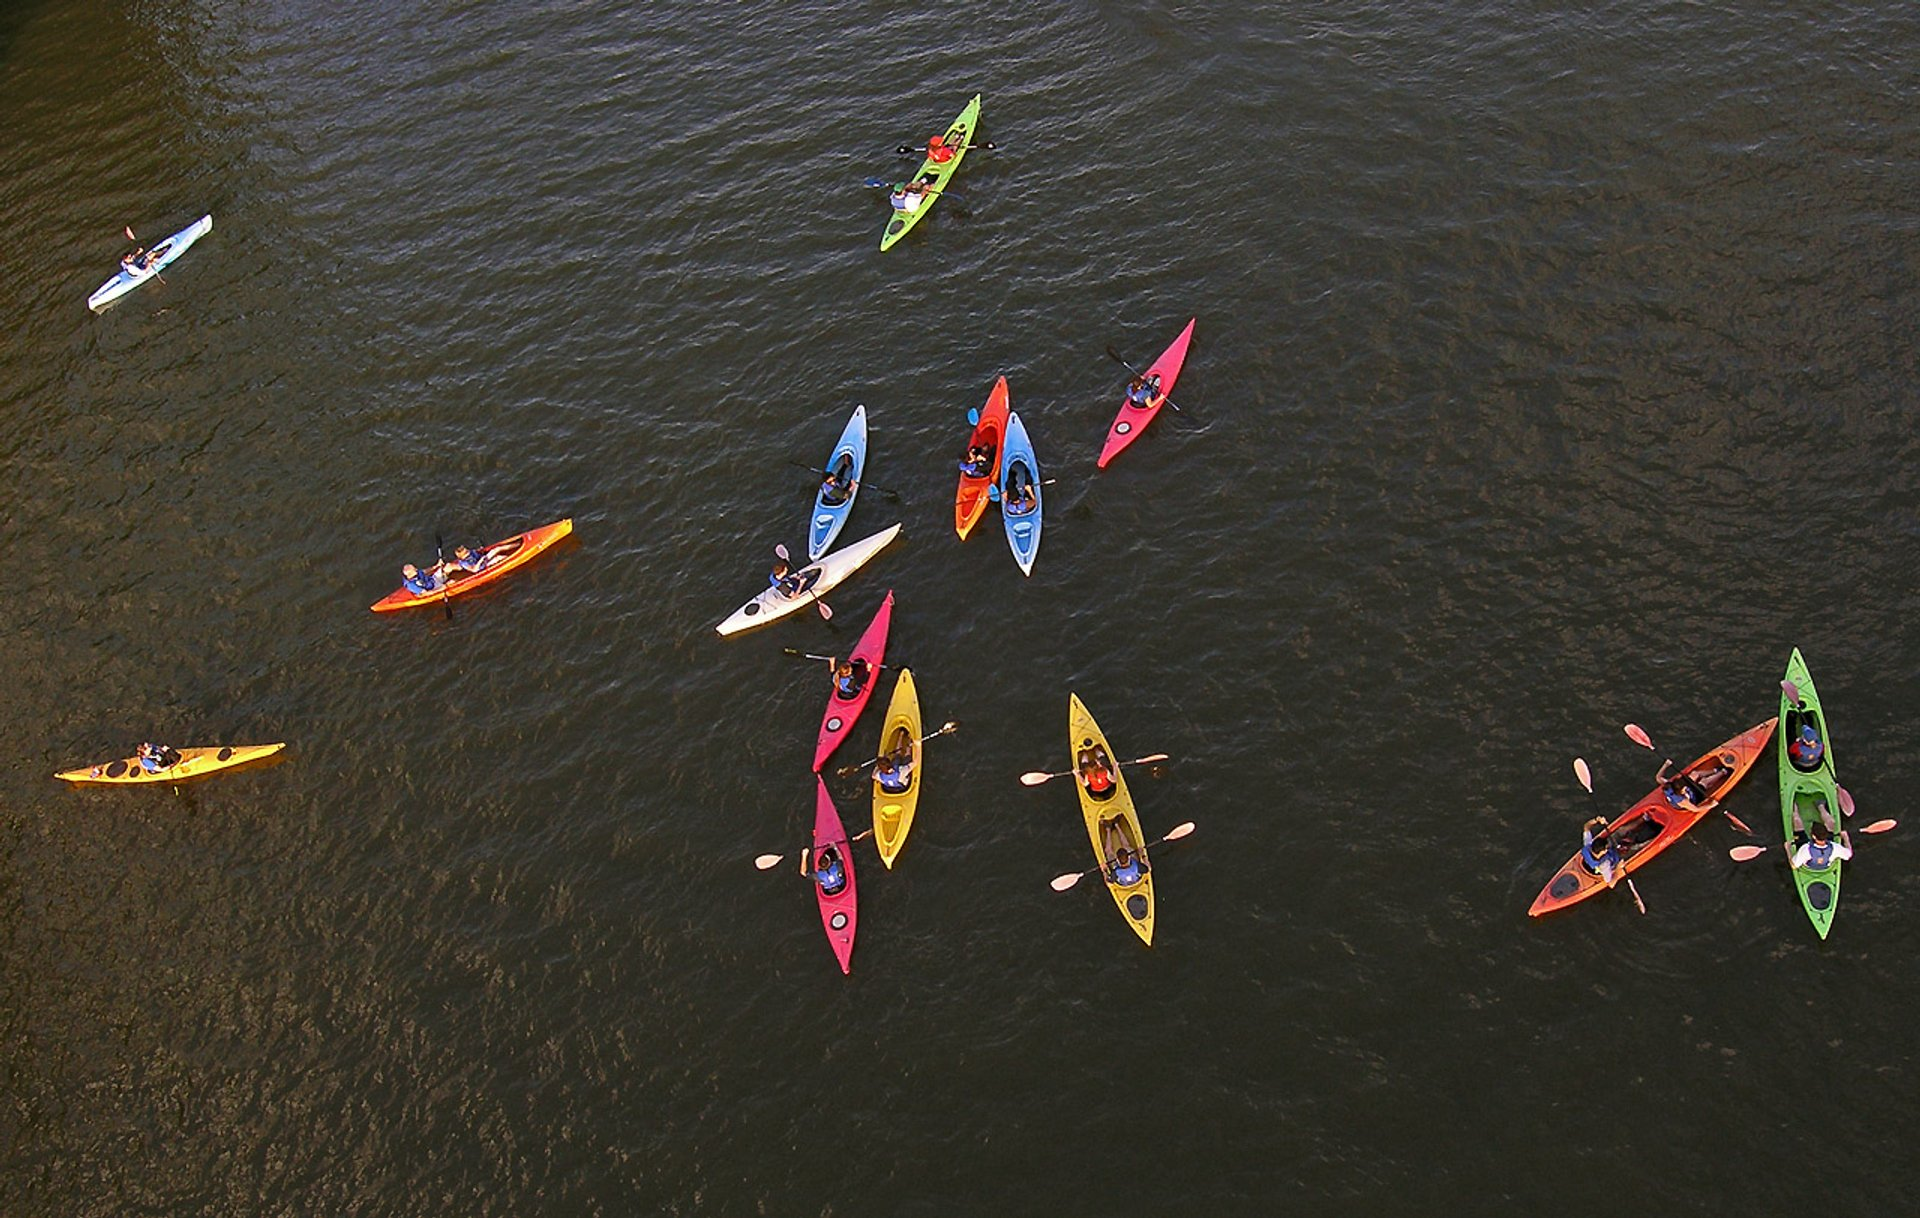 Kayaking, Paddling, and Canoeing on the Potomac in Washington, D.C. 2020 - Best Time